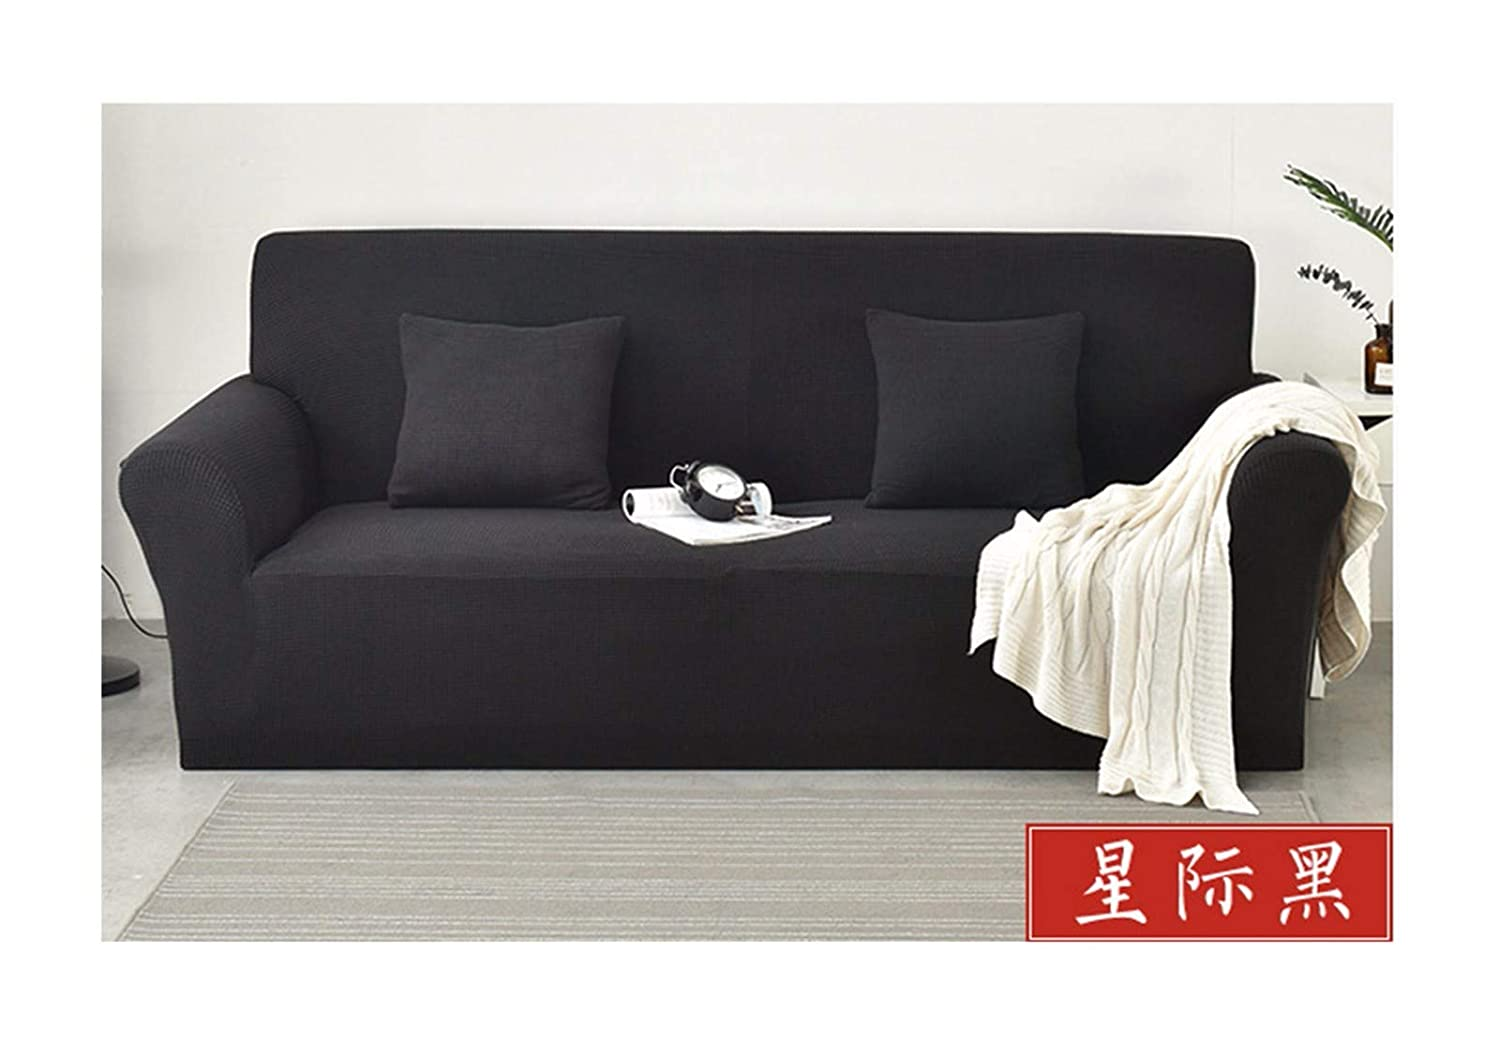 4seat VGUYFUYH Black Knitted Lazy Sofa Cover Polyester Full Package Elastic Slip-Proof Home Universal Sofa Cover Simple Fashion One Set Durable Dust-Proof Pet Dog Predective Cover,4Seat